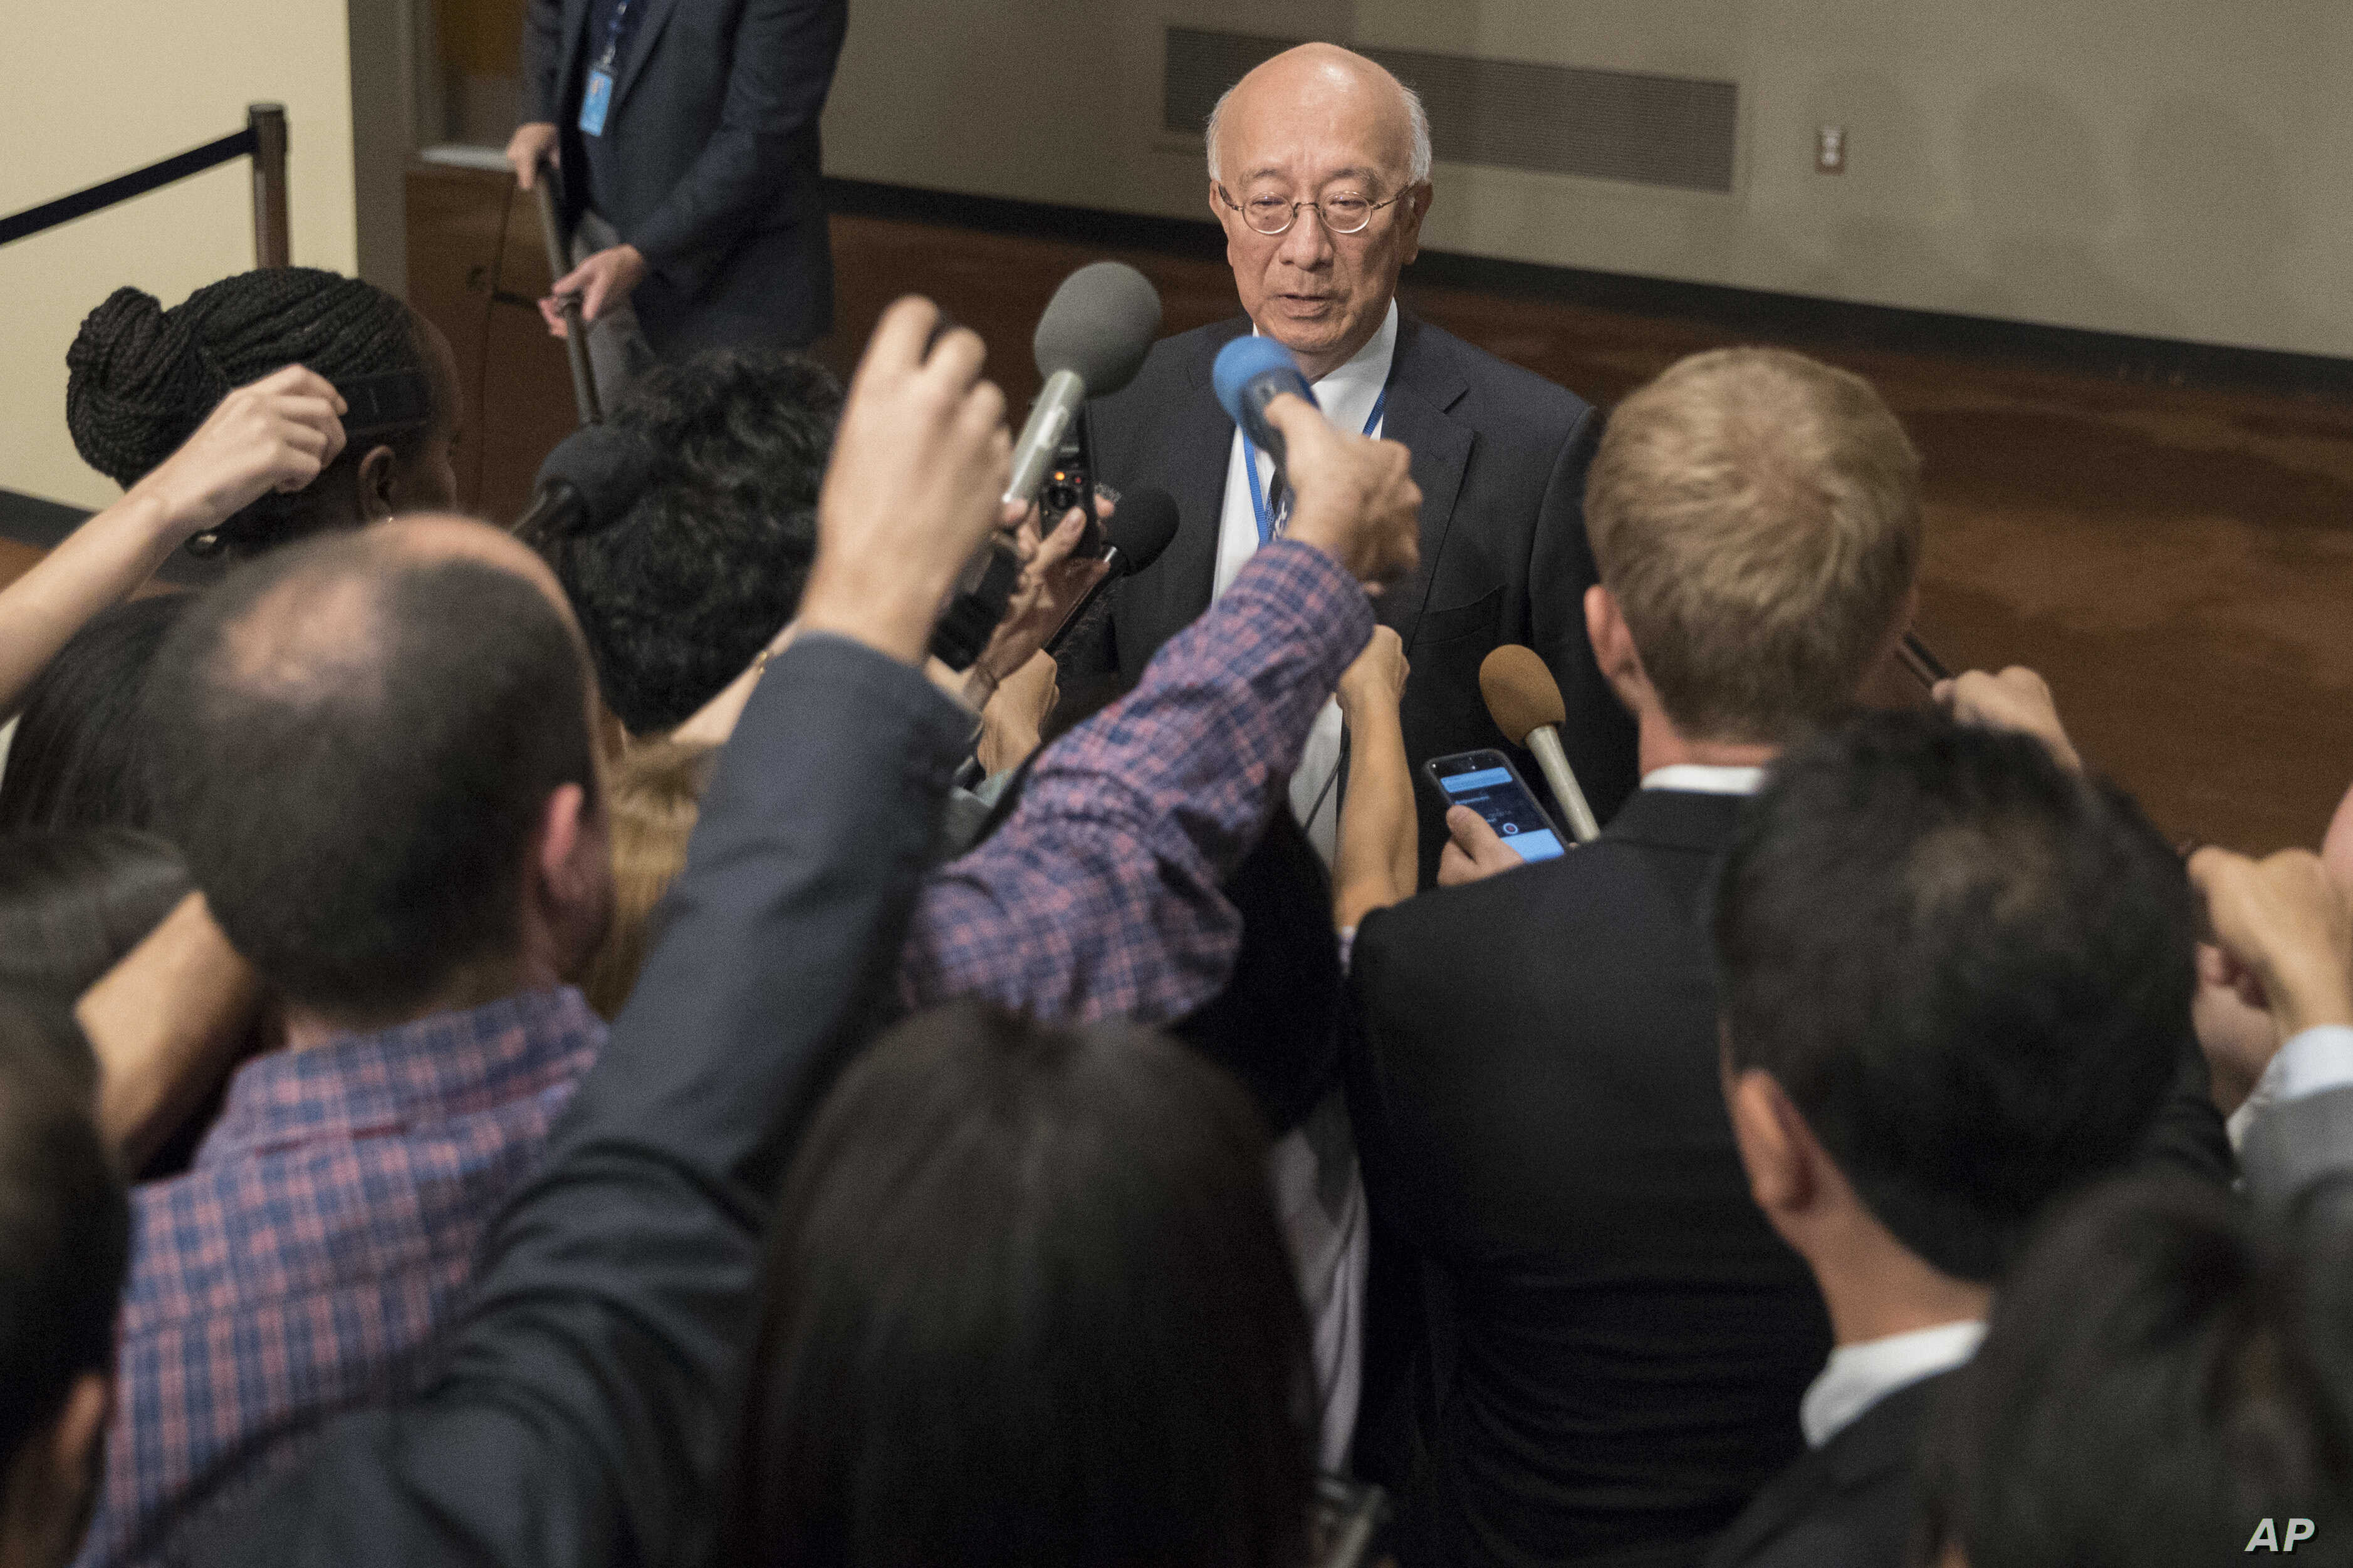 Japanese Ambassador to the United Nations Koro Bessho speaks to reporters before Security Council consultations on the situation in North Korea, Sept. 15, 2017, at U.N. headquarters.